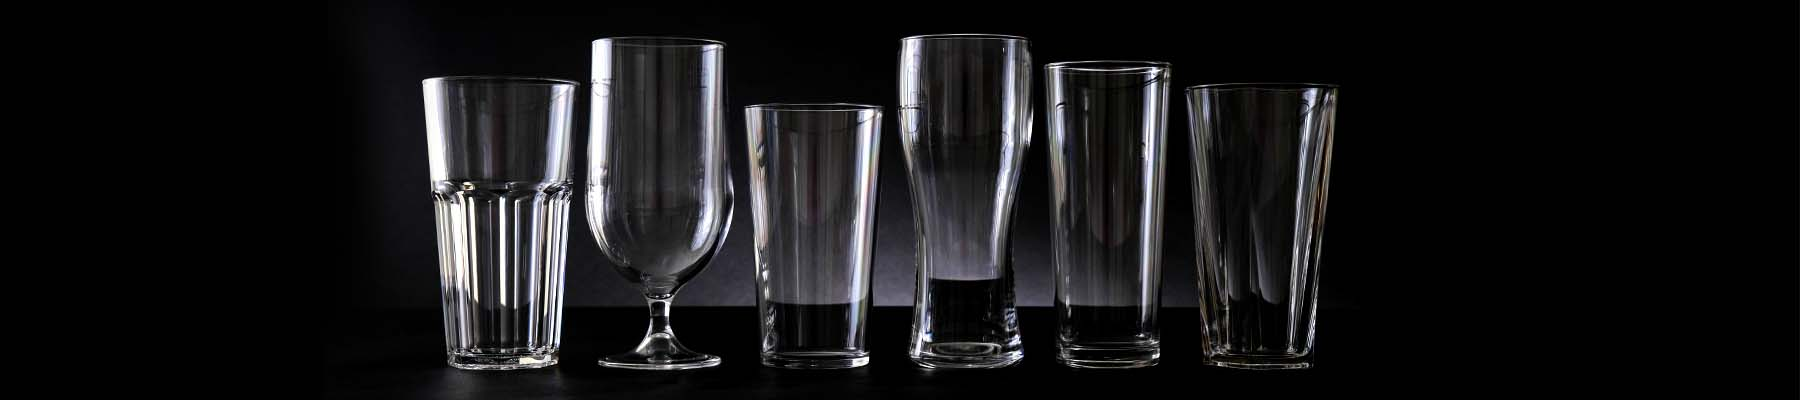 Beer Plastic Glassware Glasses